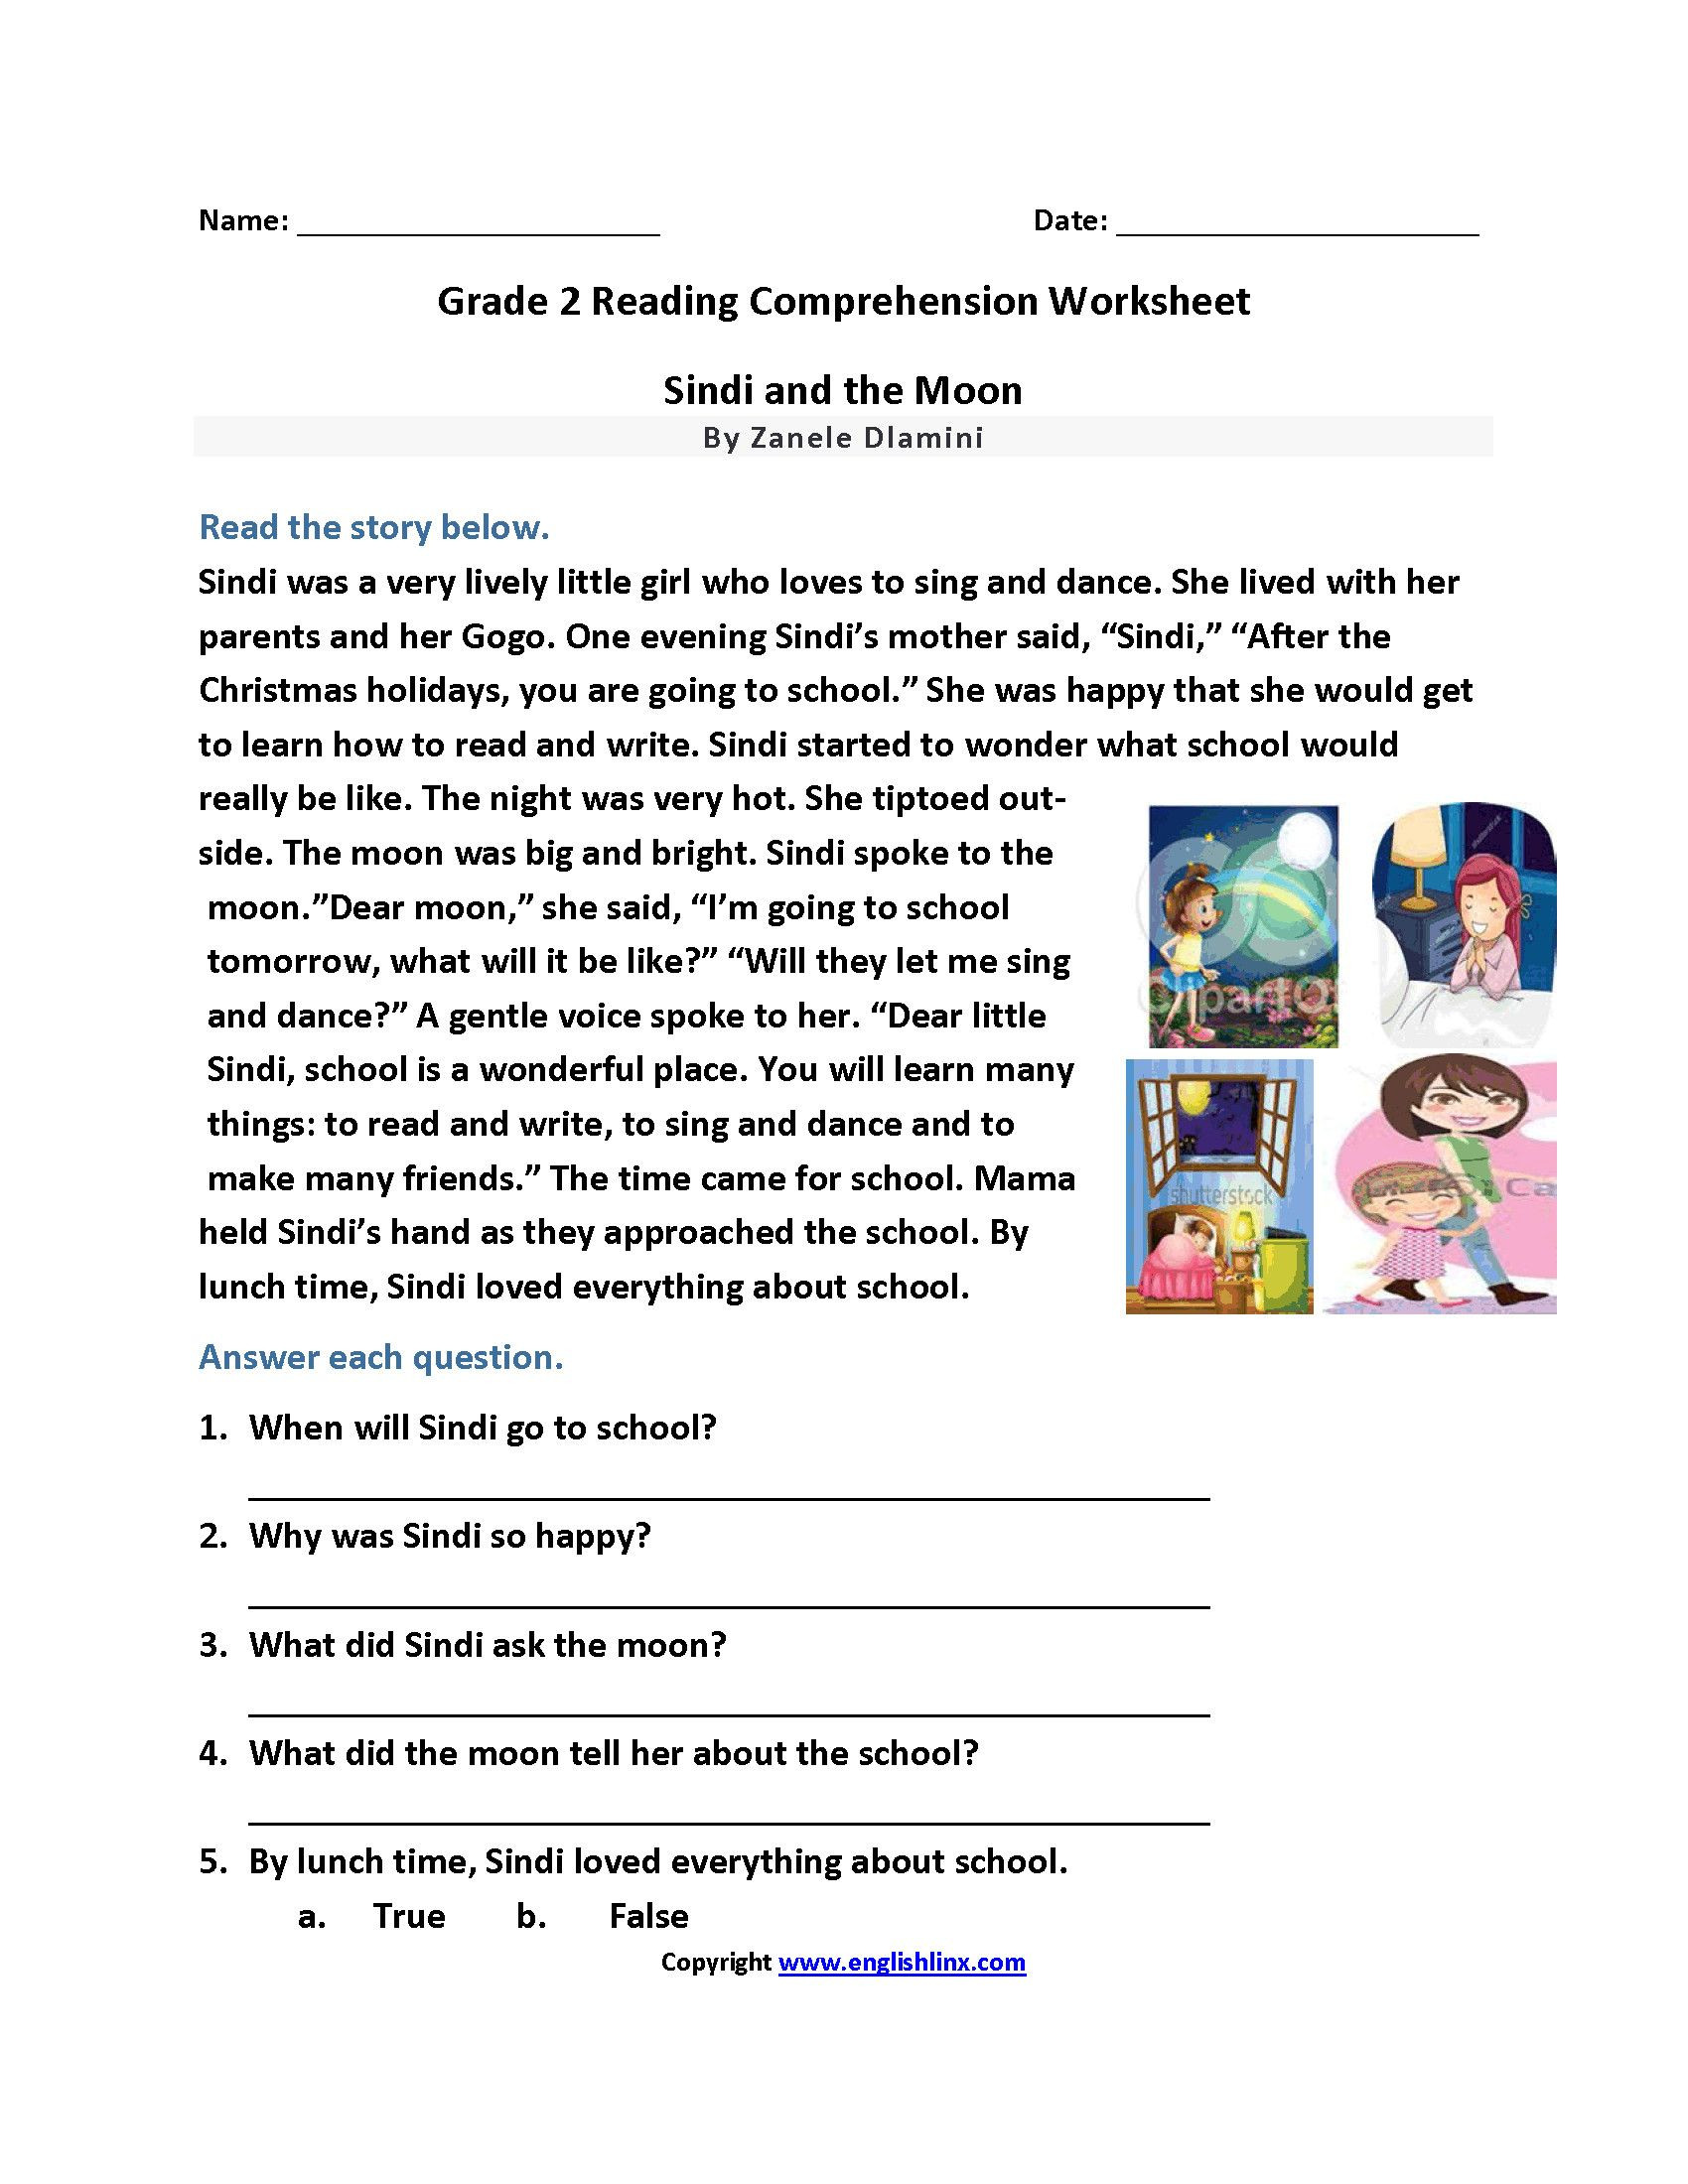 Grade 2 Reading Comprehension Worksheets Reading Exercises for 2nd Graders